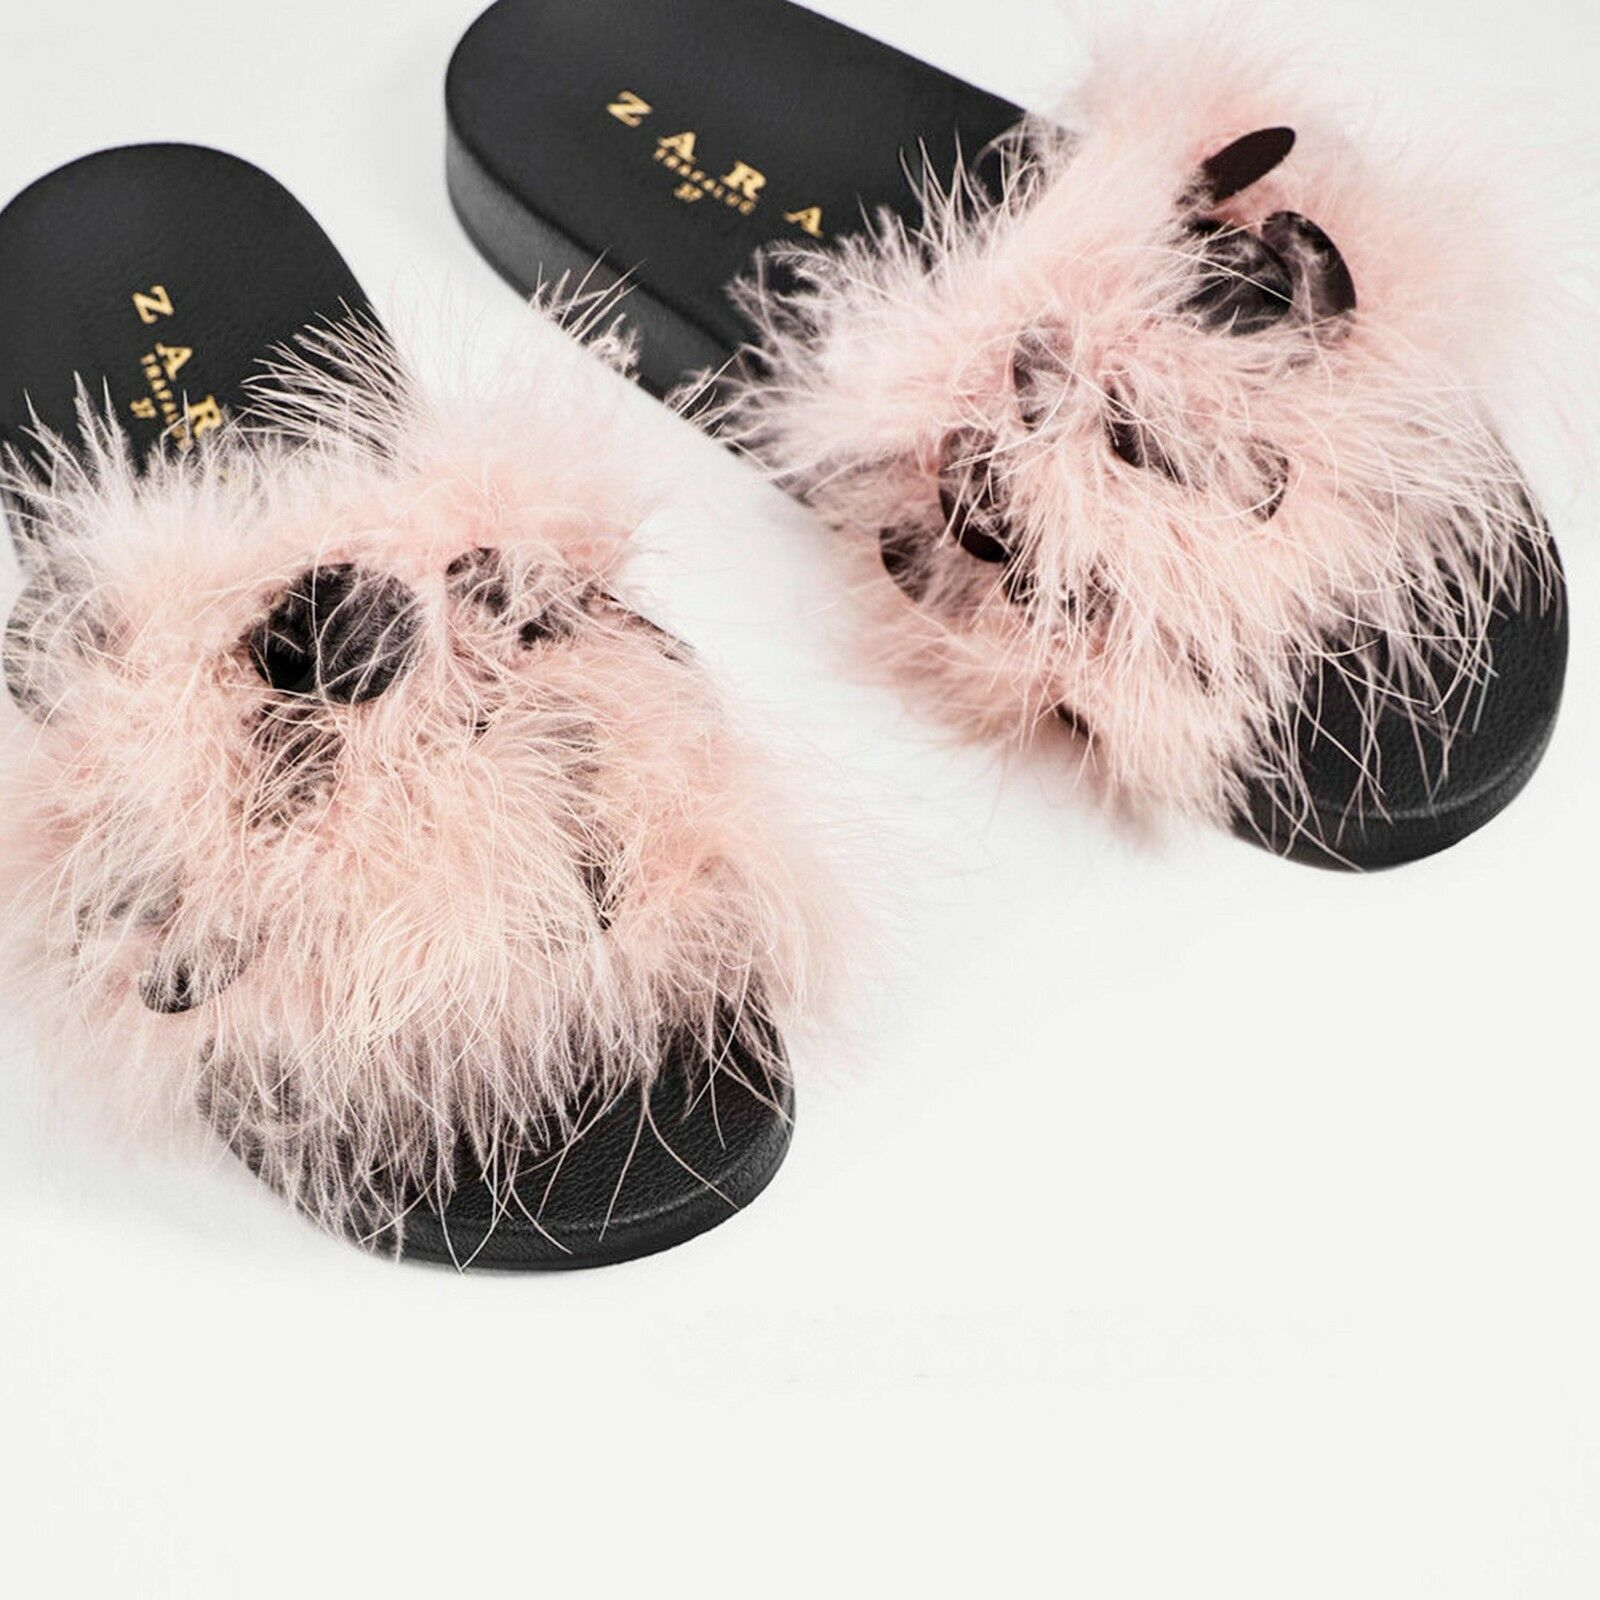 ZARA PINK FLUFFY MULES FEATHERS EMBELLISHED SLIDES SIZE 5 UK UK 5 38 EU 7.5 US 1f4132